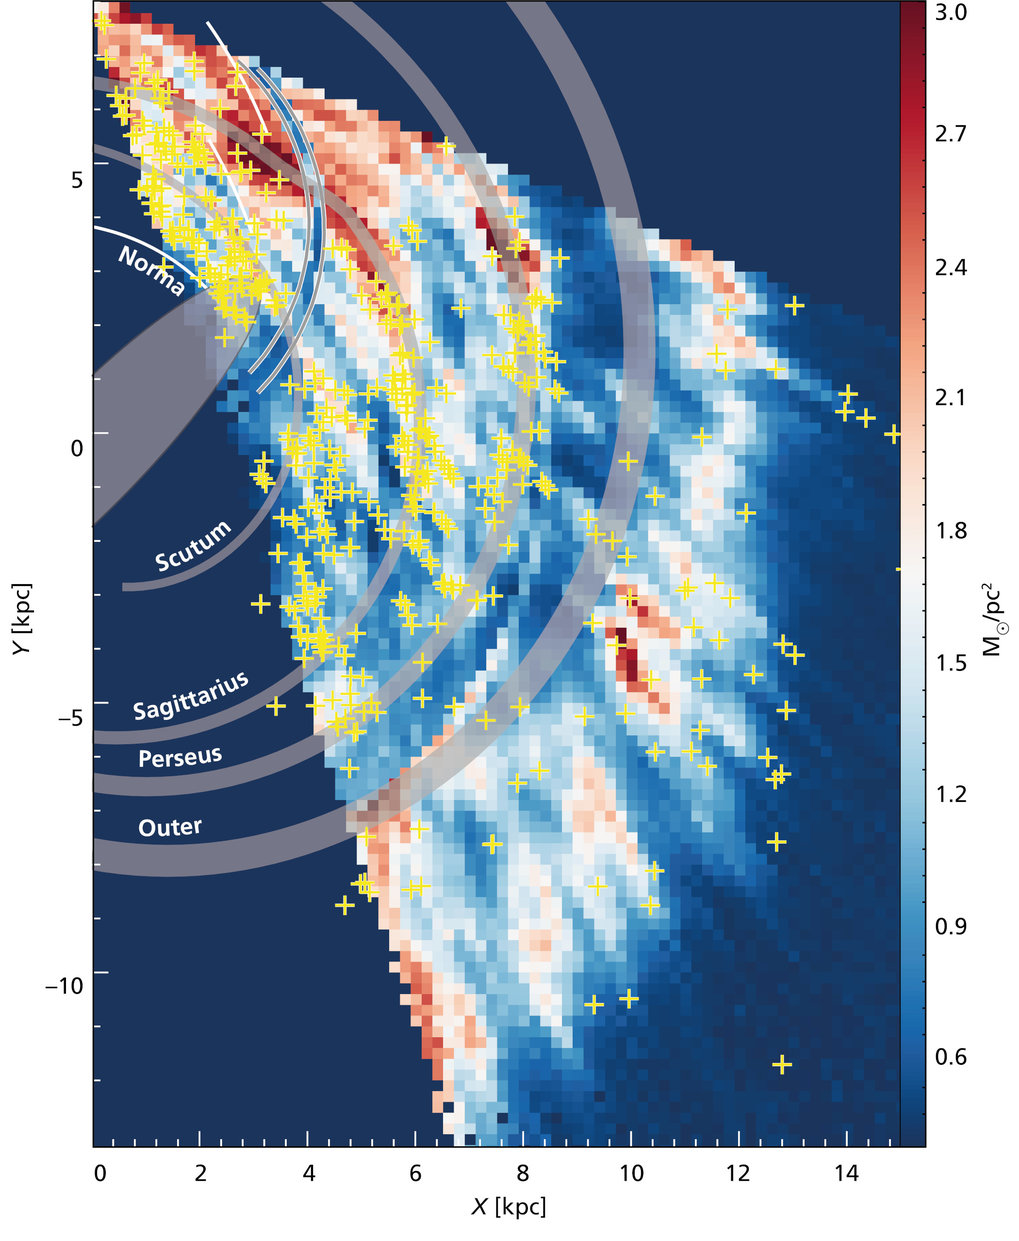 Reconstruction of the hydrogen gas distribution in a portion of the Milky Way based on the THOR survey observations. This approximates what an observer would see from the top of the Galaxy. The colours correspond to the density of atomic hydrogen. The grey bands indicate the spiral arms of the Milky Way. The crosses locate clouds of ionized gas that mark the high-mass star-forming regions.